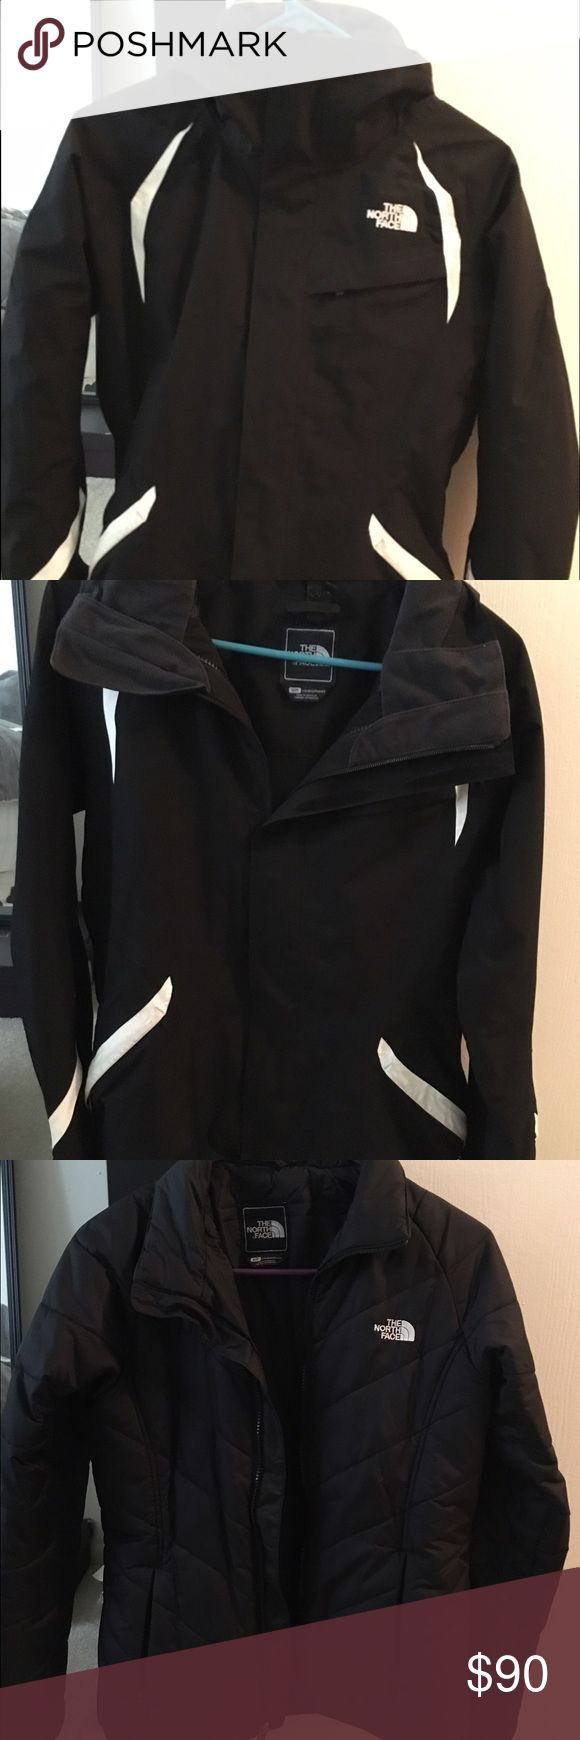 Barely worn womens north face 2 piece coat It can be worn all together for a nice winter coat, or either of the two pieces can be worn separately for a light jacket. Perfect condition The North Face Jackets & Coats Utility Jackets